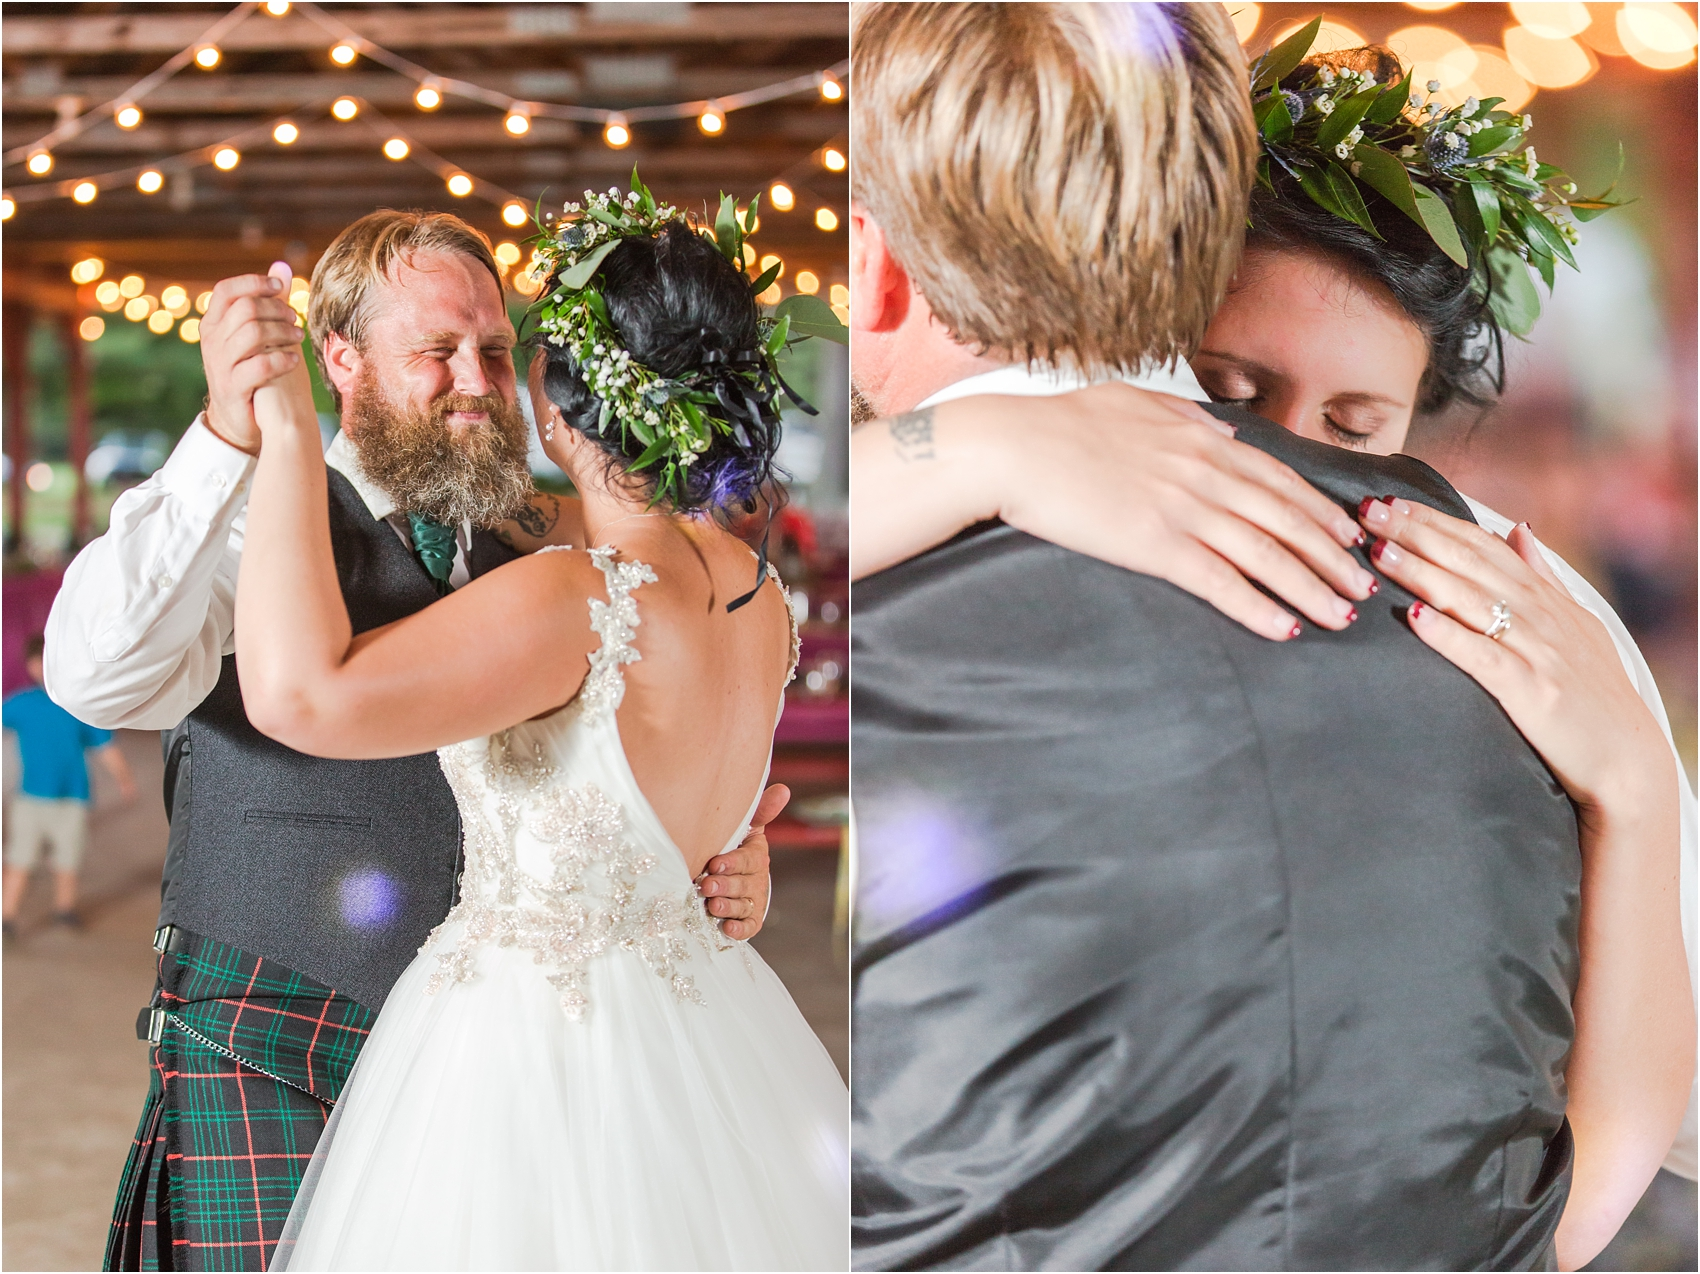 scottish-inspired-wedding-photos-in-the-country-in-port-sanilac-michigan-by-courtney-carolyn-photography_0048.jpg